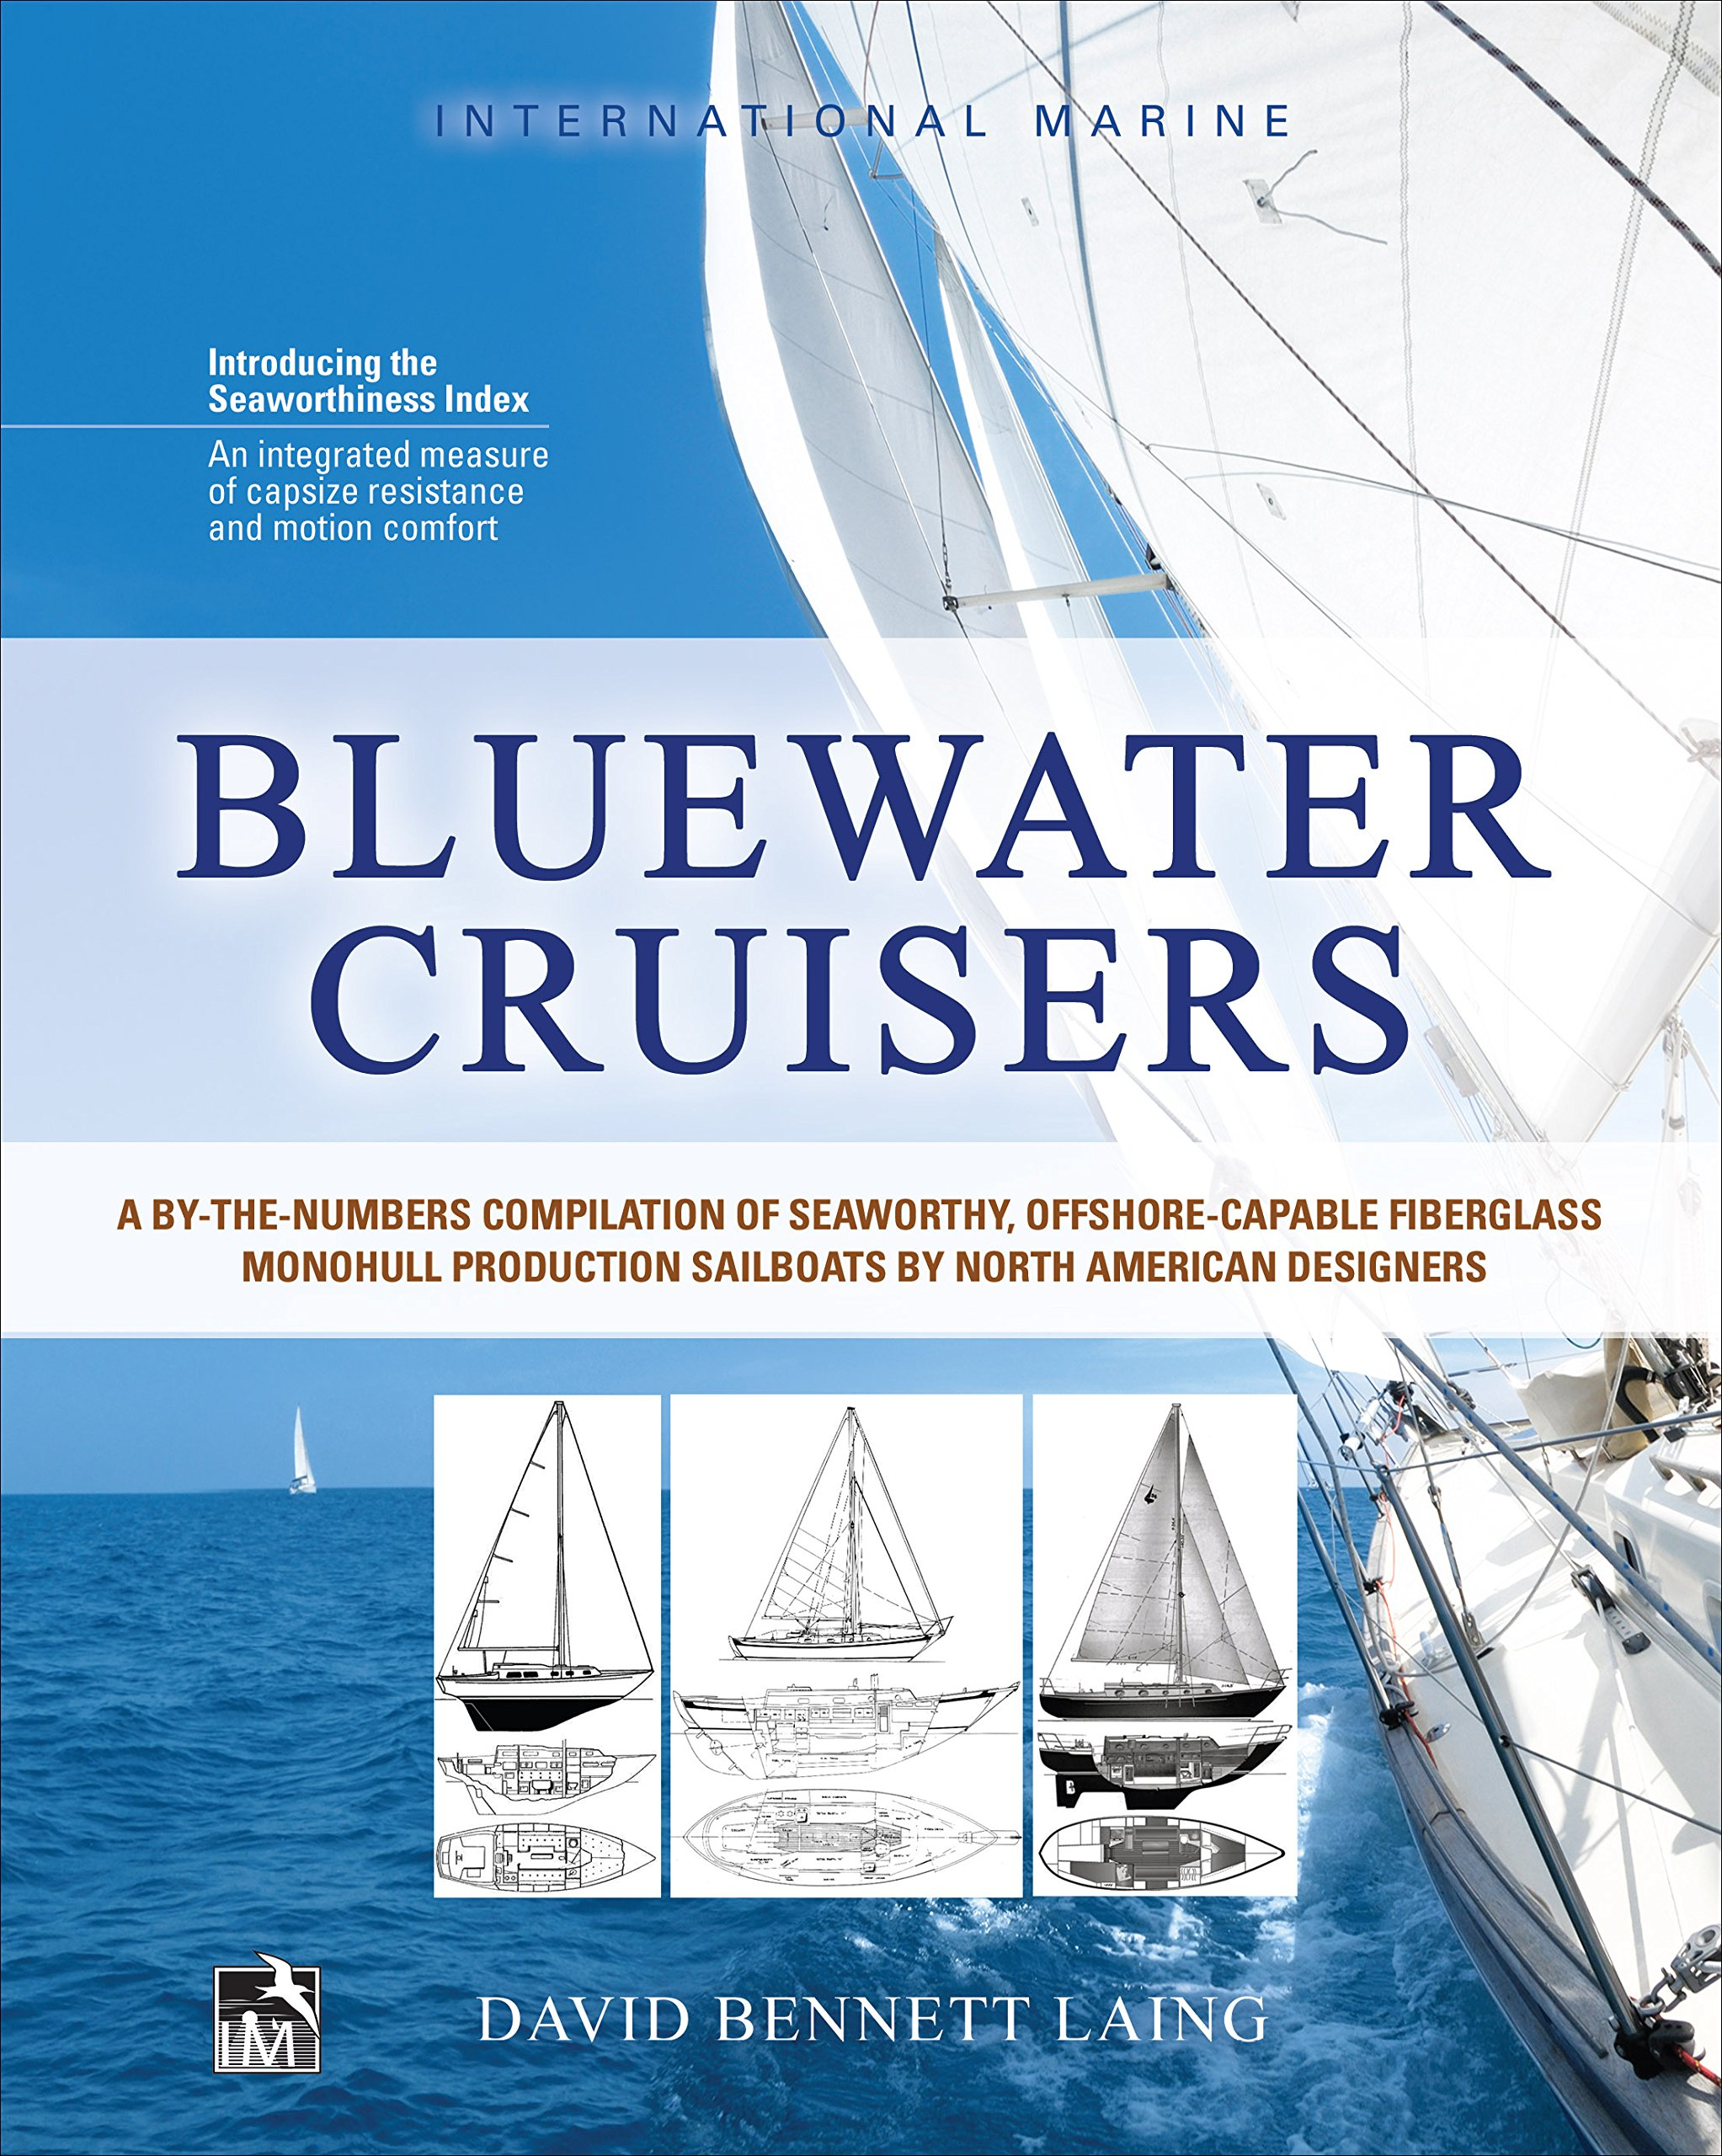 Bluewater Cruisers: A By-The-Numbers Compilation of Seaworthy, Offshore-Capable Fiberglass Monohull Production Sailboats by North American Designers: A ... Monohull Sailboats por David Bennett Laing